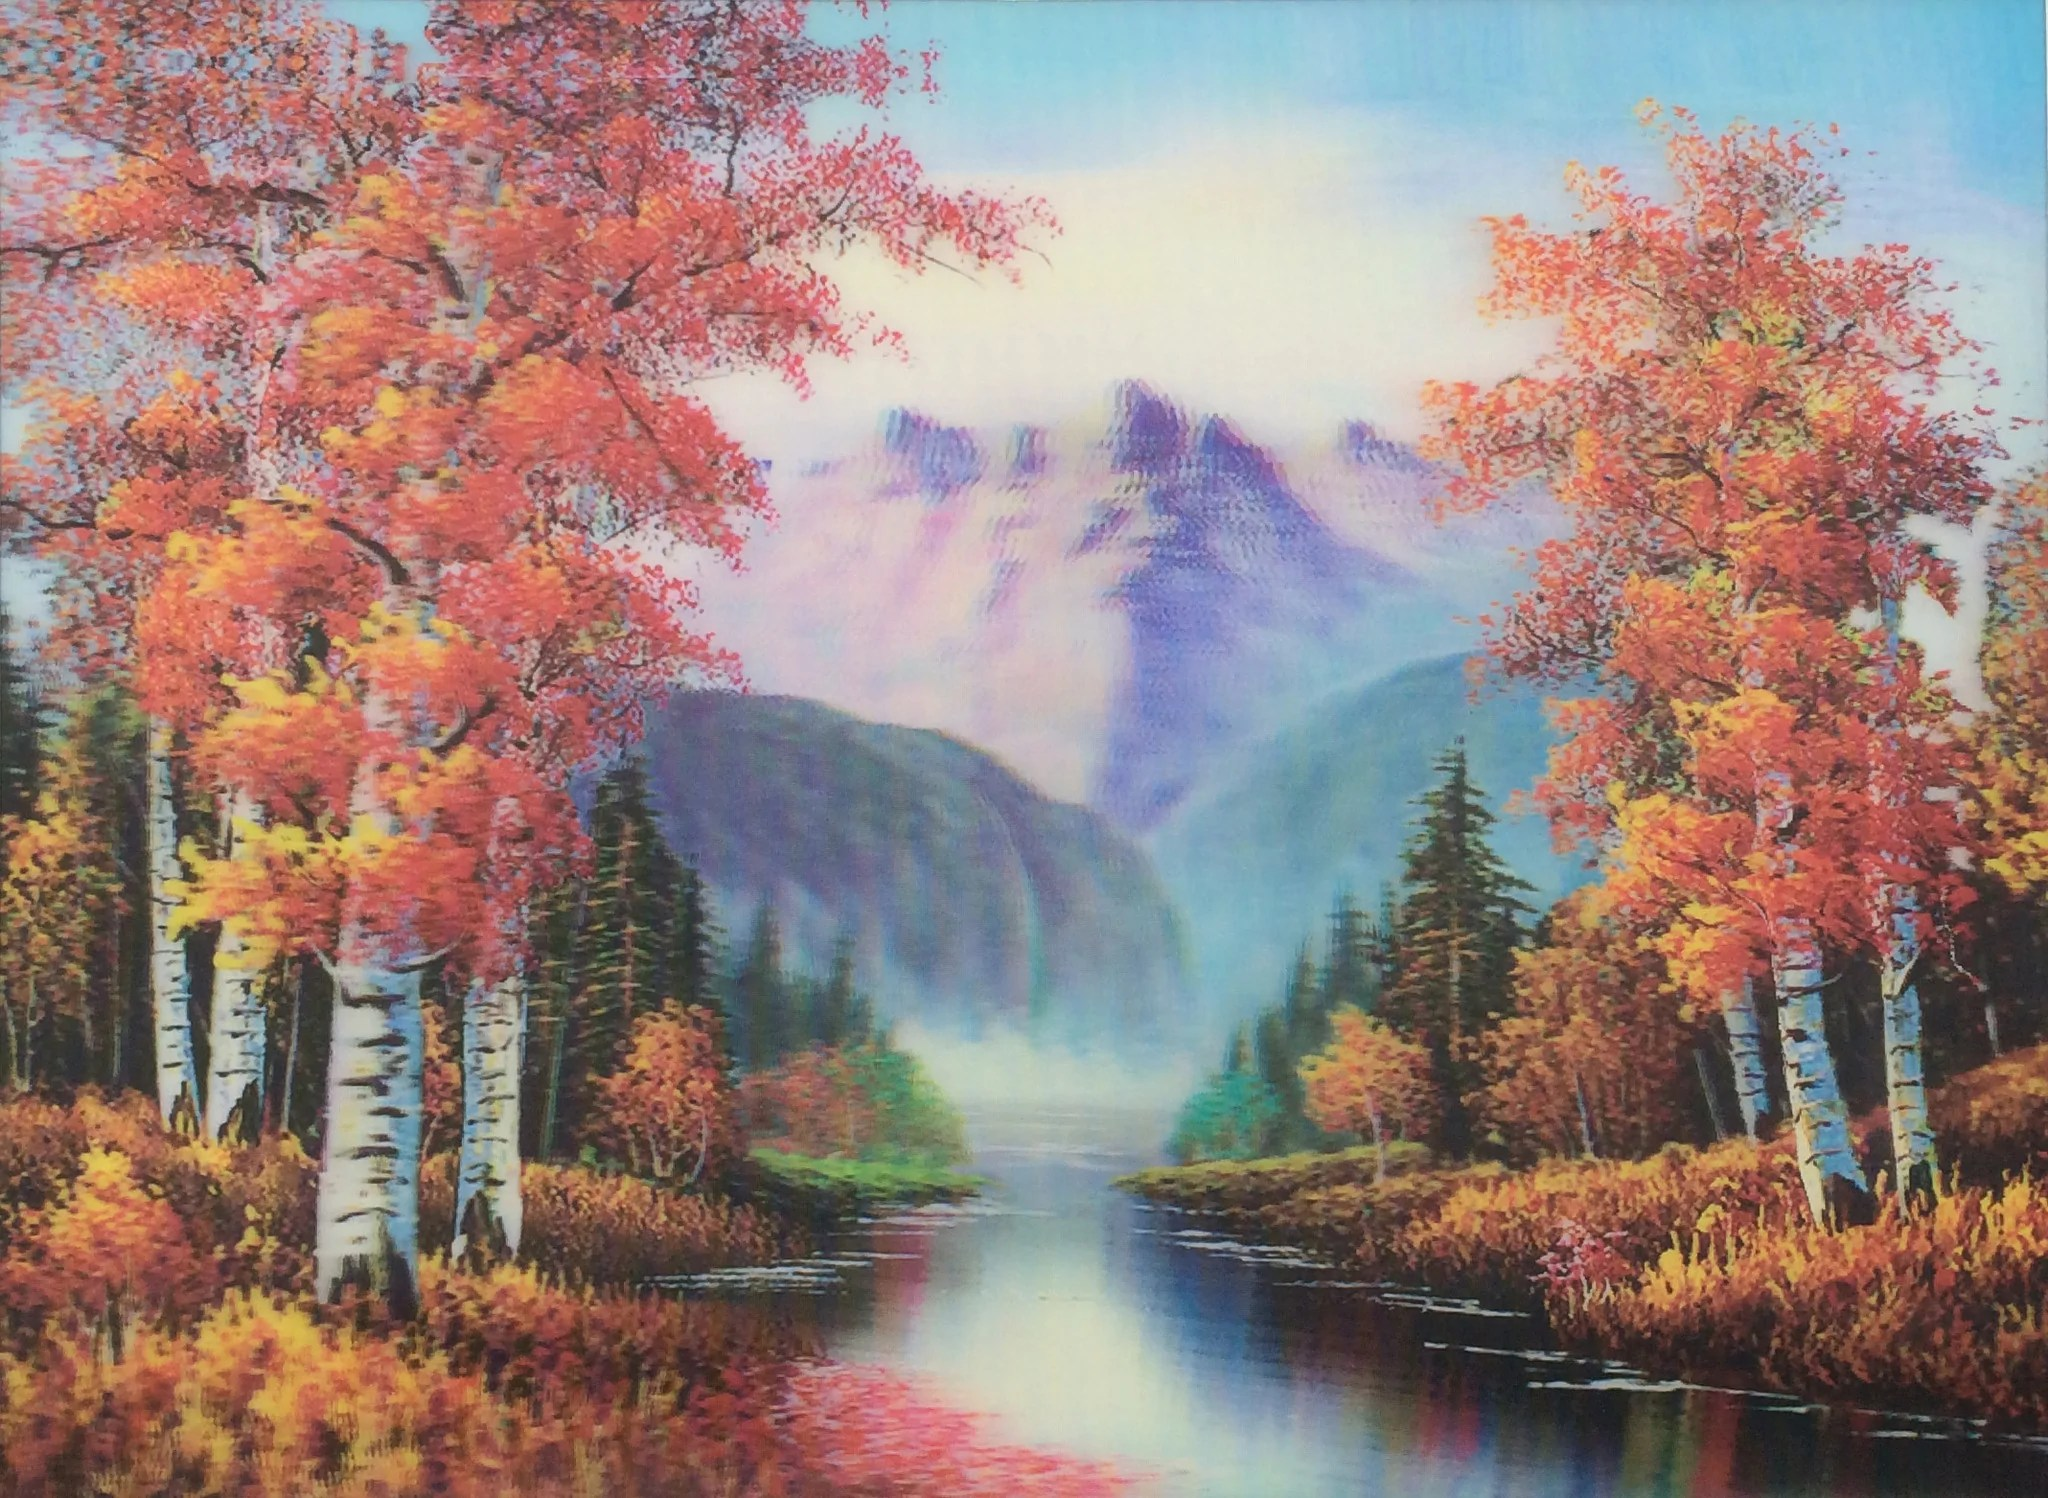 Thomas Kinkade Fall Wallpaper Tree Path 3d Flip Picture Matted Or Framed Very Colorful